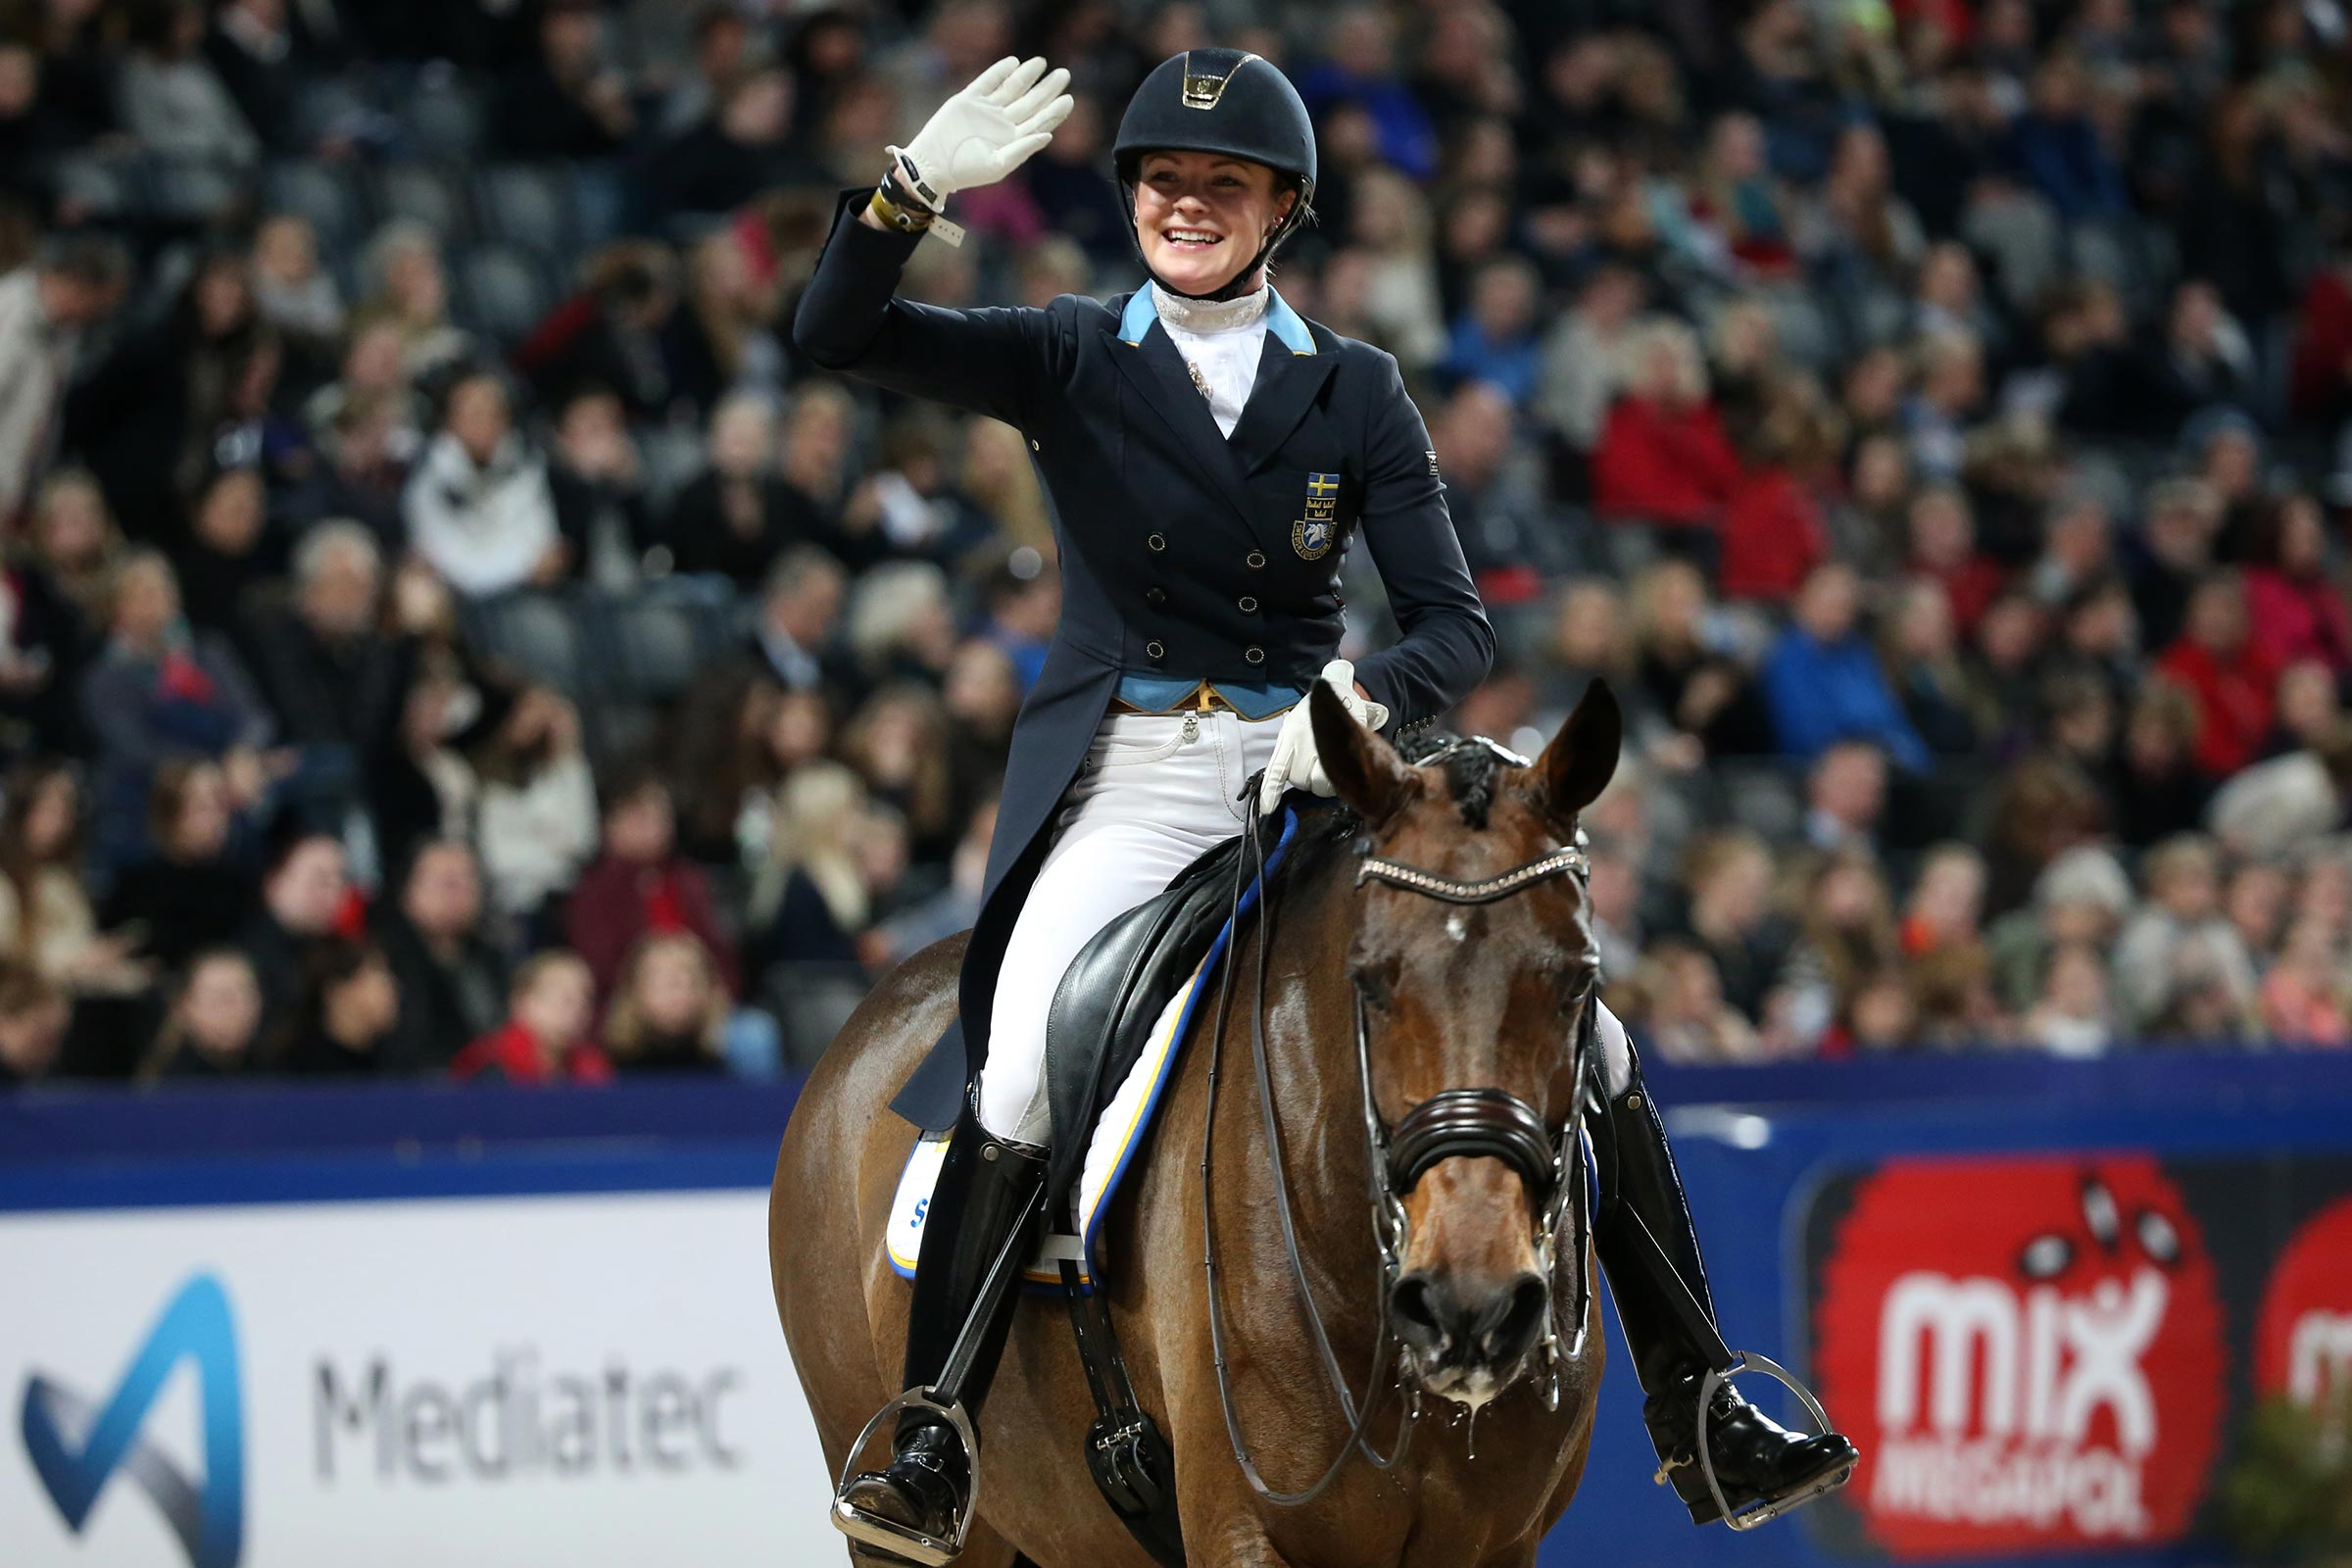 Friends Arena, Swedish International Horse Show Jeanna Högberg, SWE and Darcia VH. Photo: Roland Thunholm Code:718 35